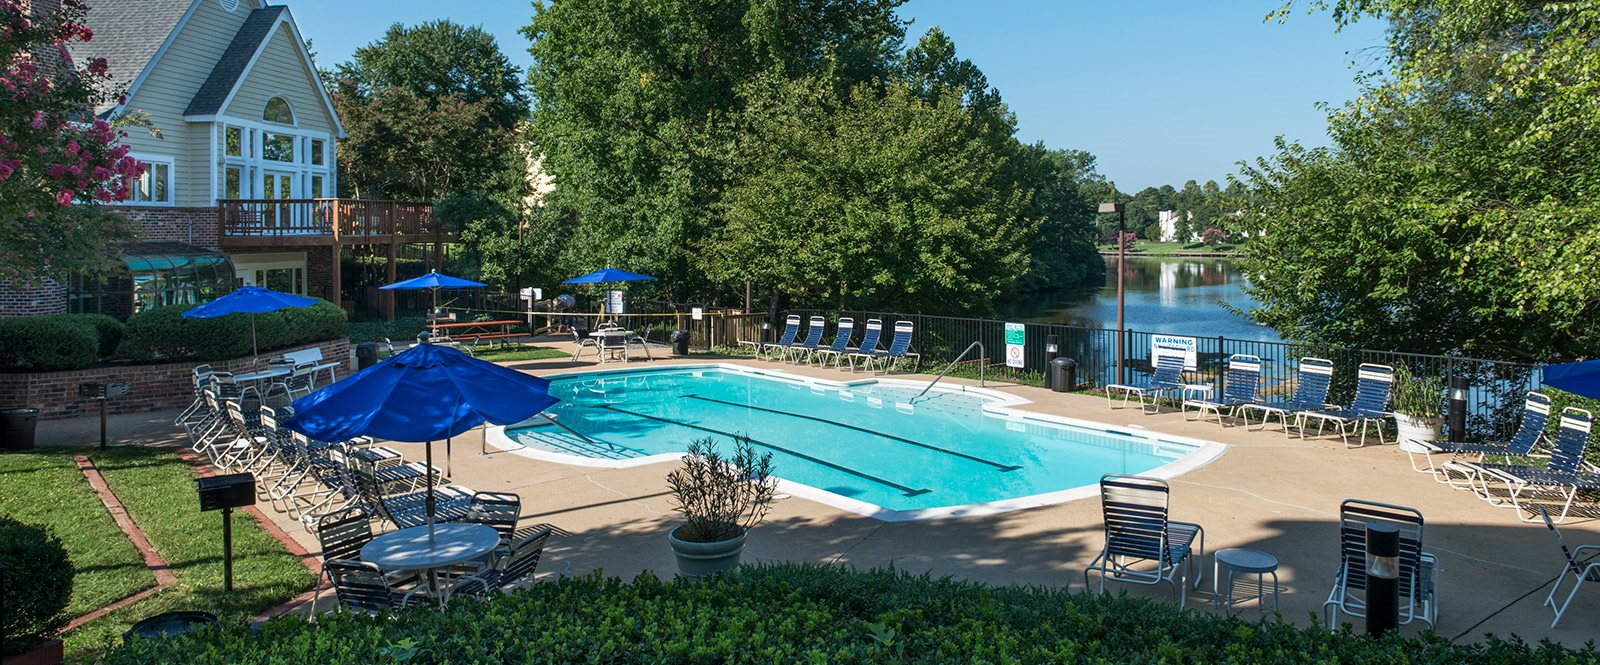 Pool at apartments in Henrico VA